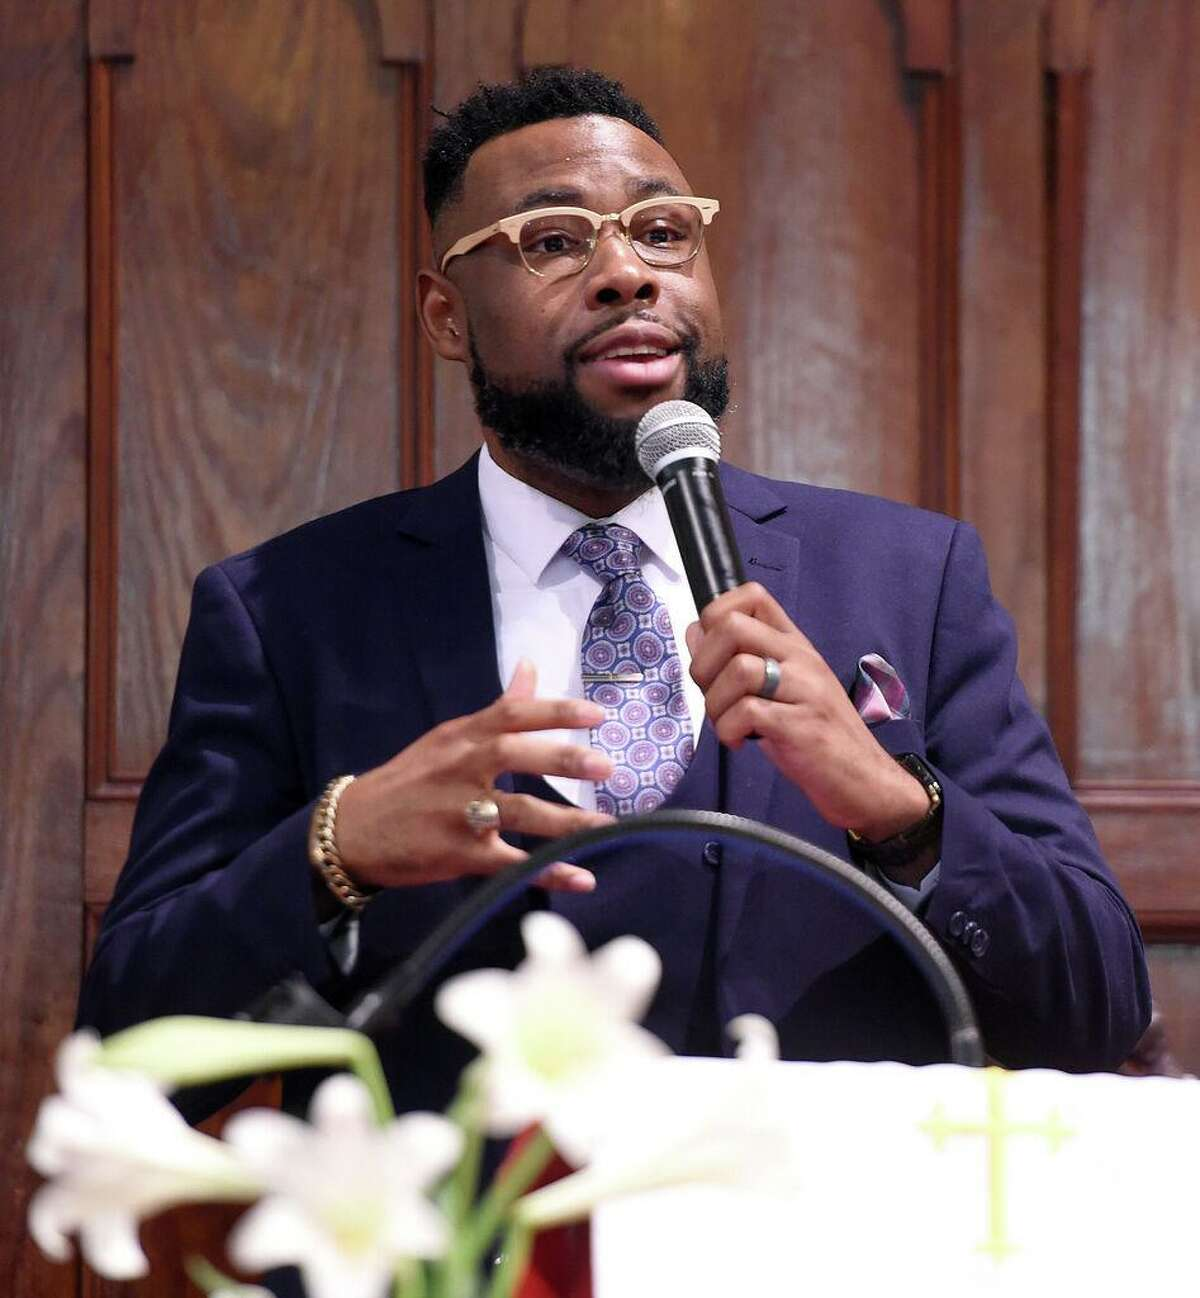 Rev. Kelcy G. L. Steele leads the Hope for Healing Community Prayer Service at Varick Memorial AME Zion Church in New Haven on April 28, 2019.